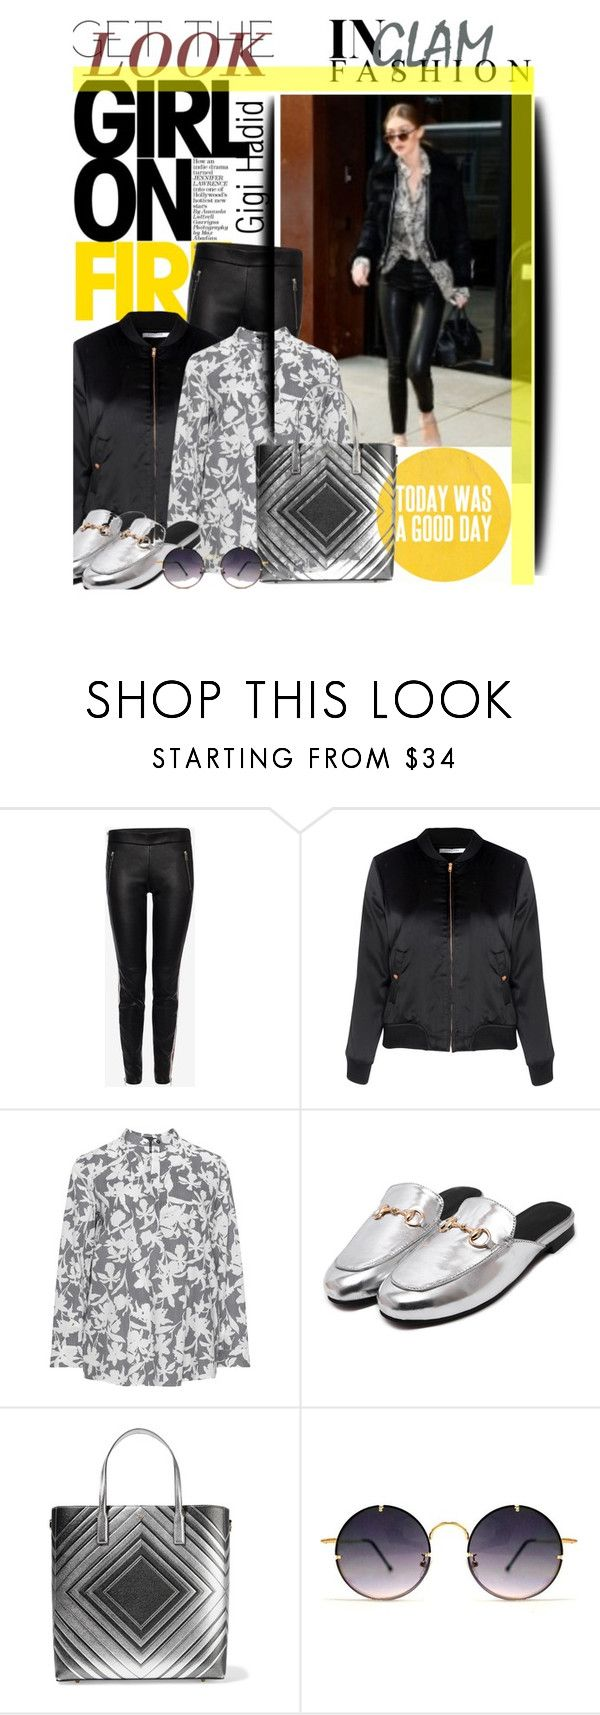 """Gigi Hadid Get the Look - Winter style"" by no-where-girl ❤ liked on Polyvore featuring Alexander McQueen, Glamorous, Persona, Anya Hindmarch, Spitfire and GetTheLook"